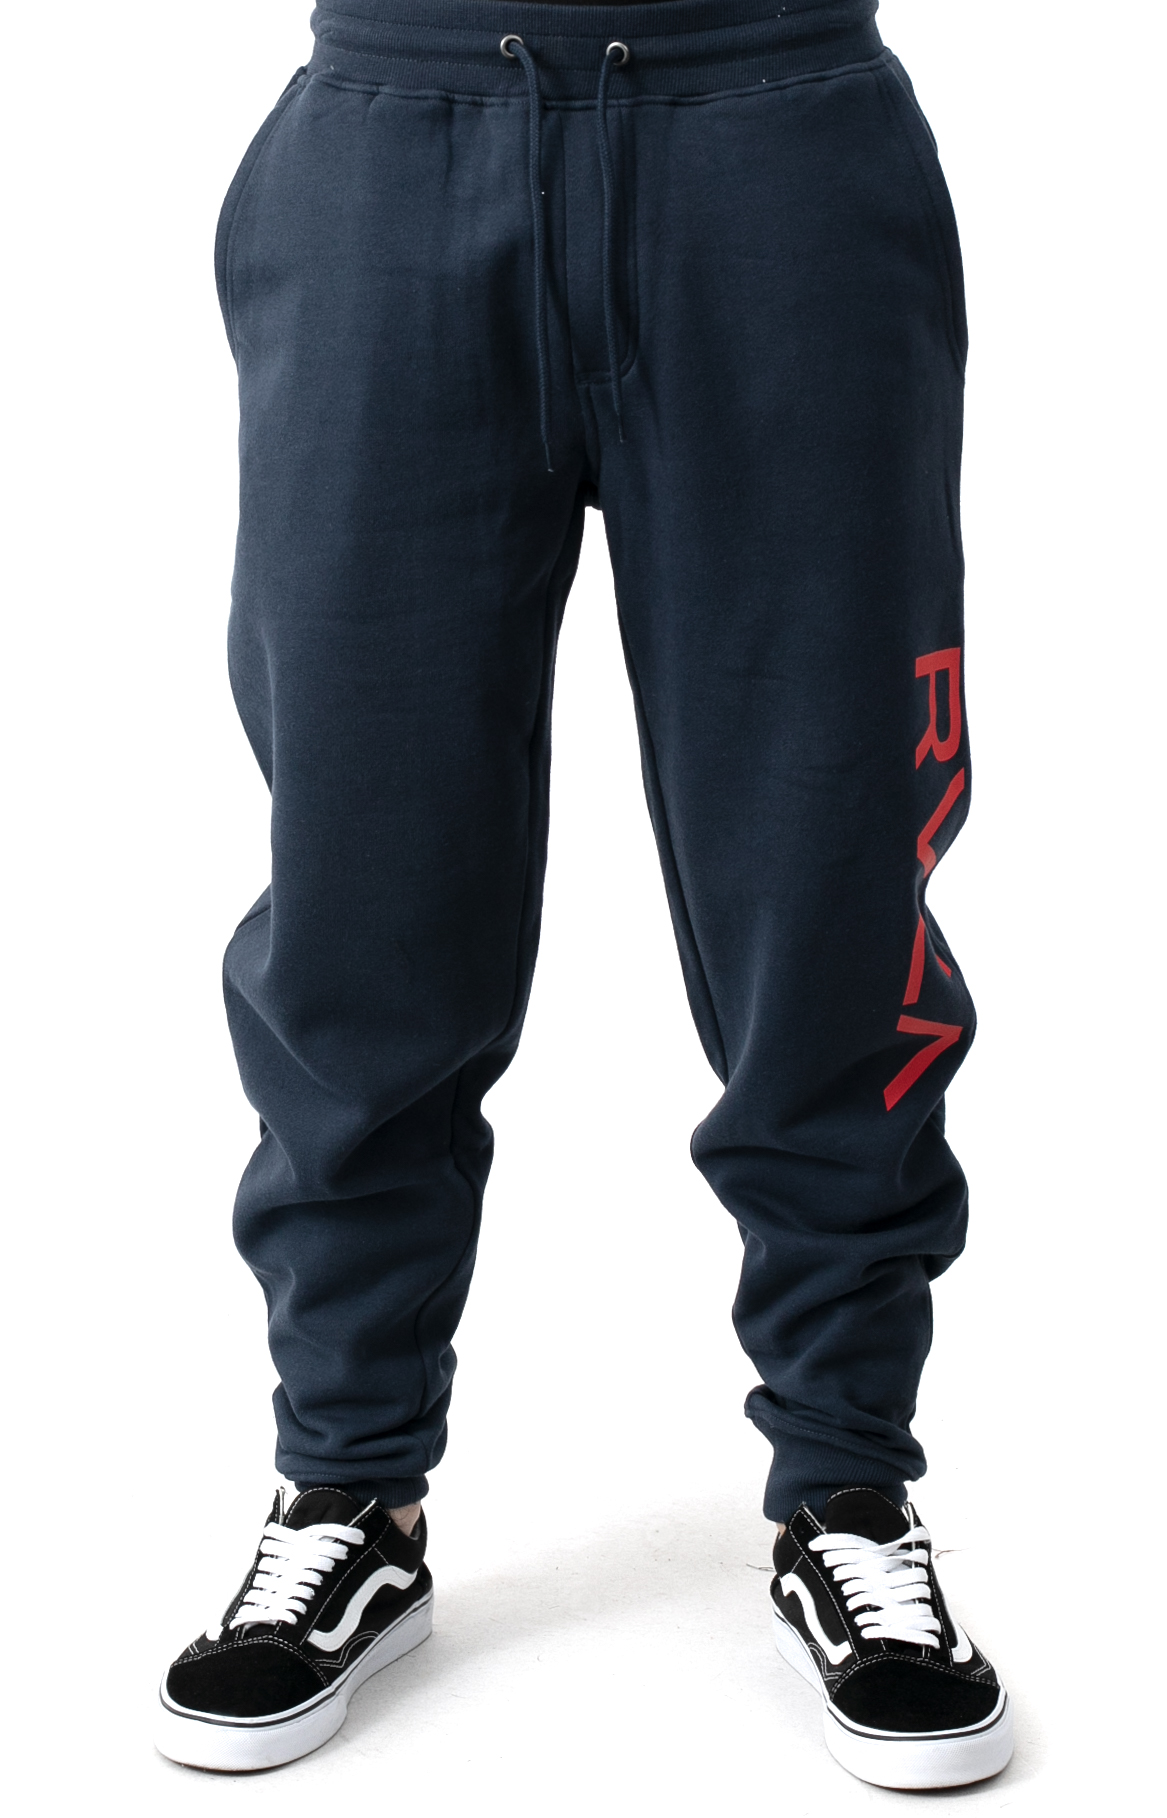 Big RVCA Sweatpants - Moody Blue  2